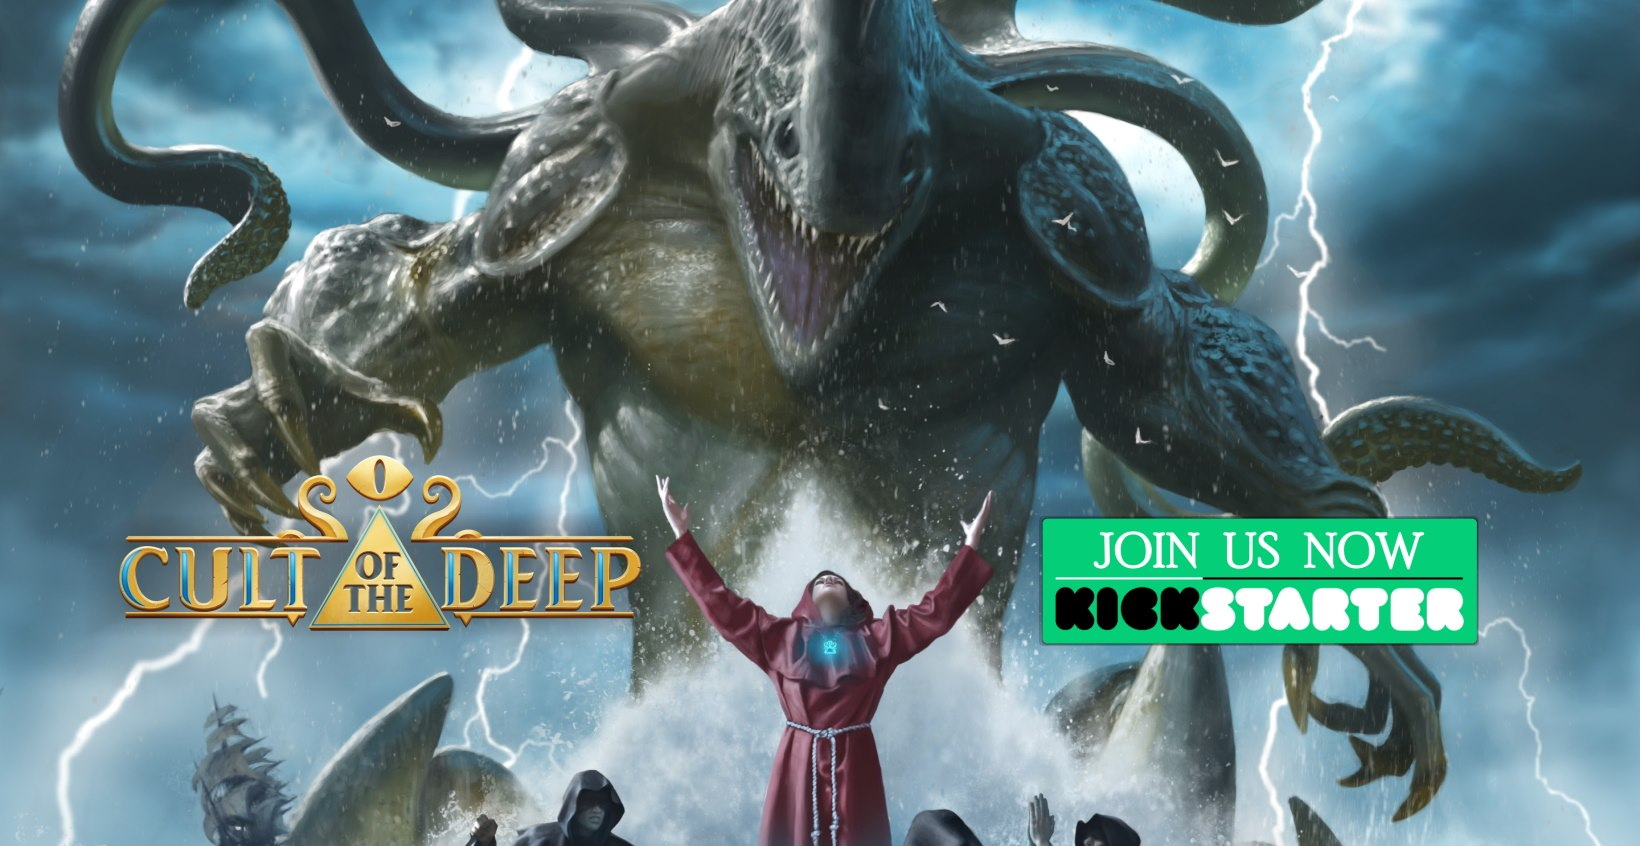 Cult of the Deep on Kickstarter